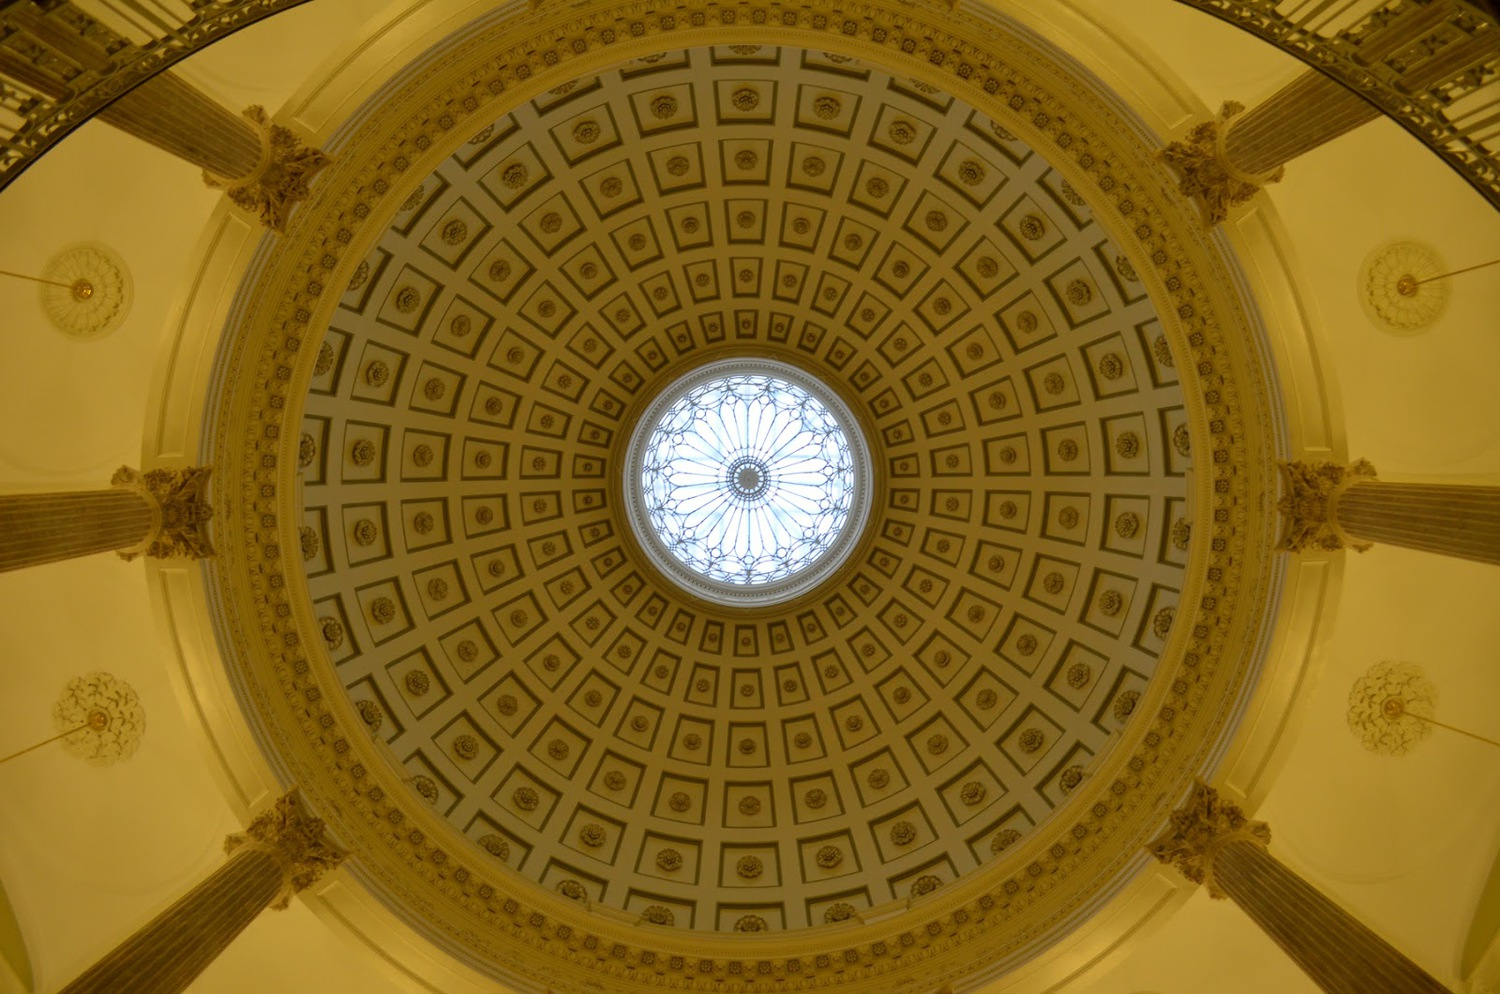 Before heading up the stairs to the second floor, take a look up to see the rotunda's dome.